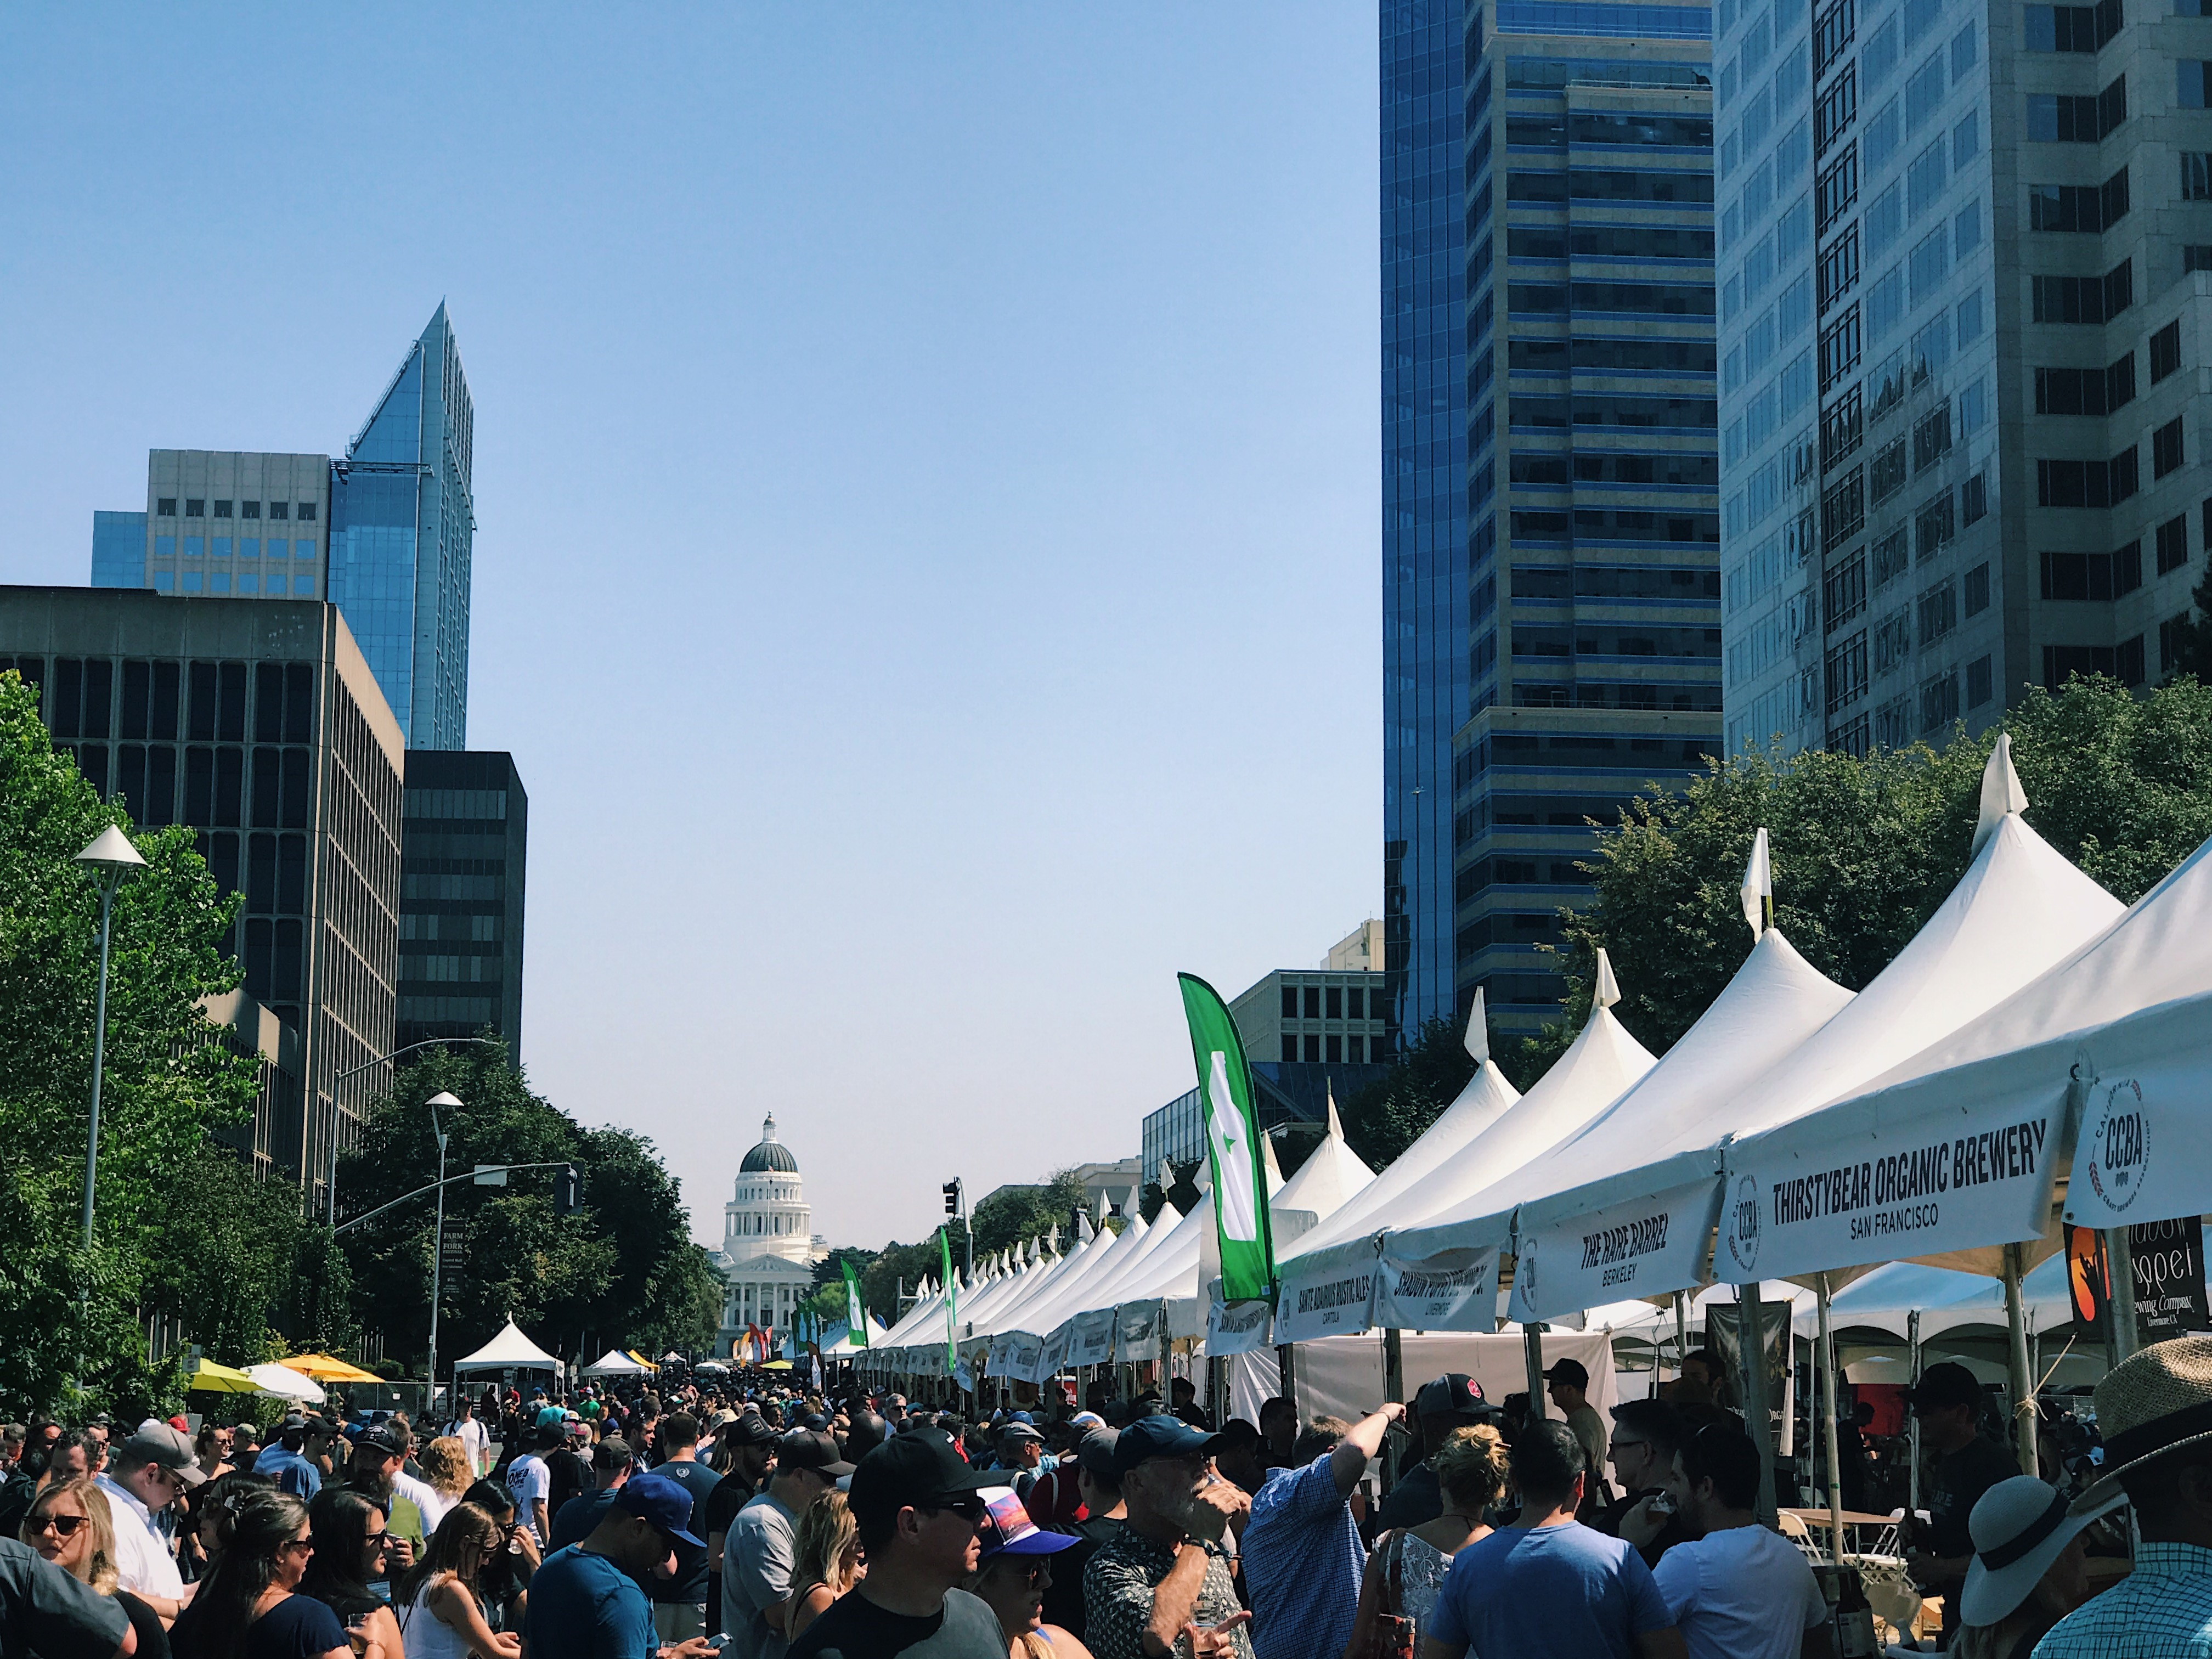 Cheers to the Third Annual California Craft Beer Summit!